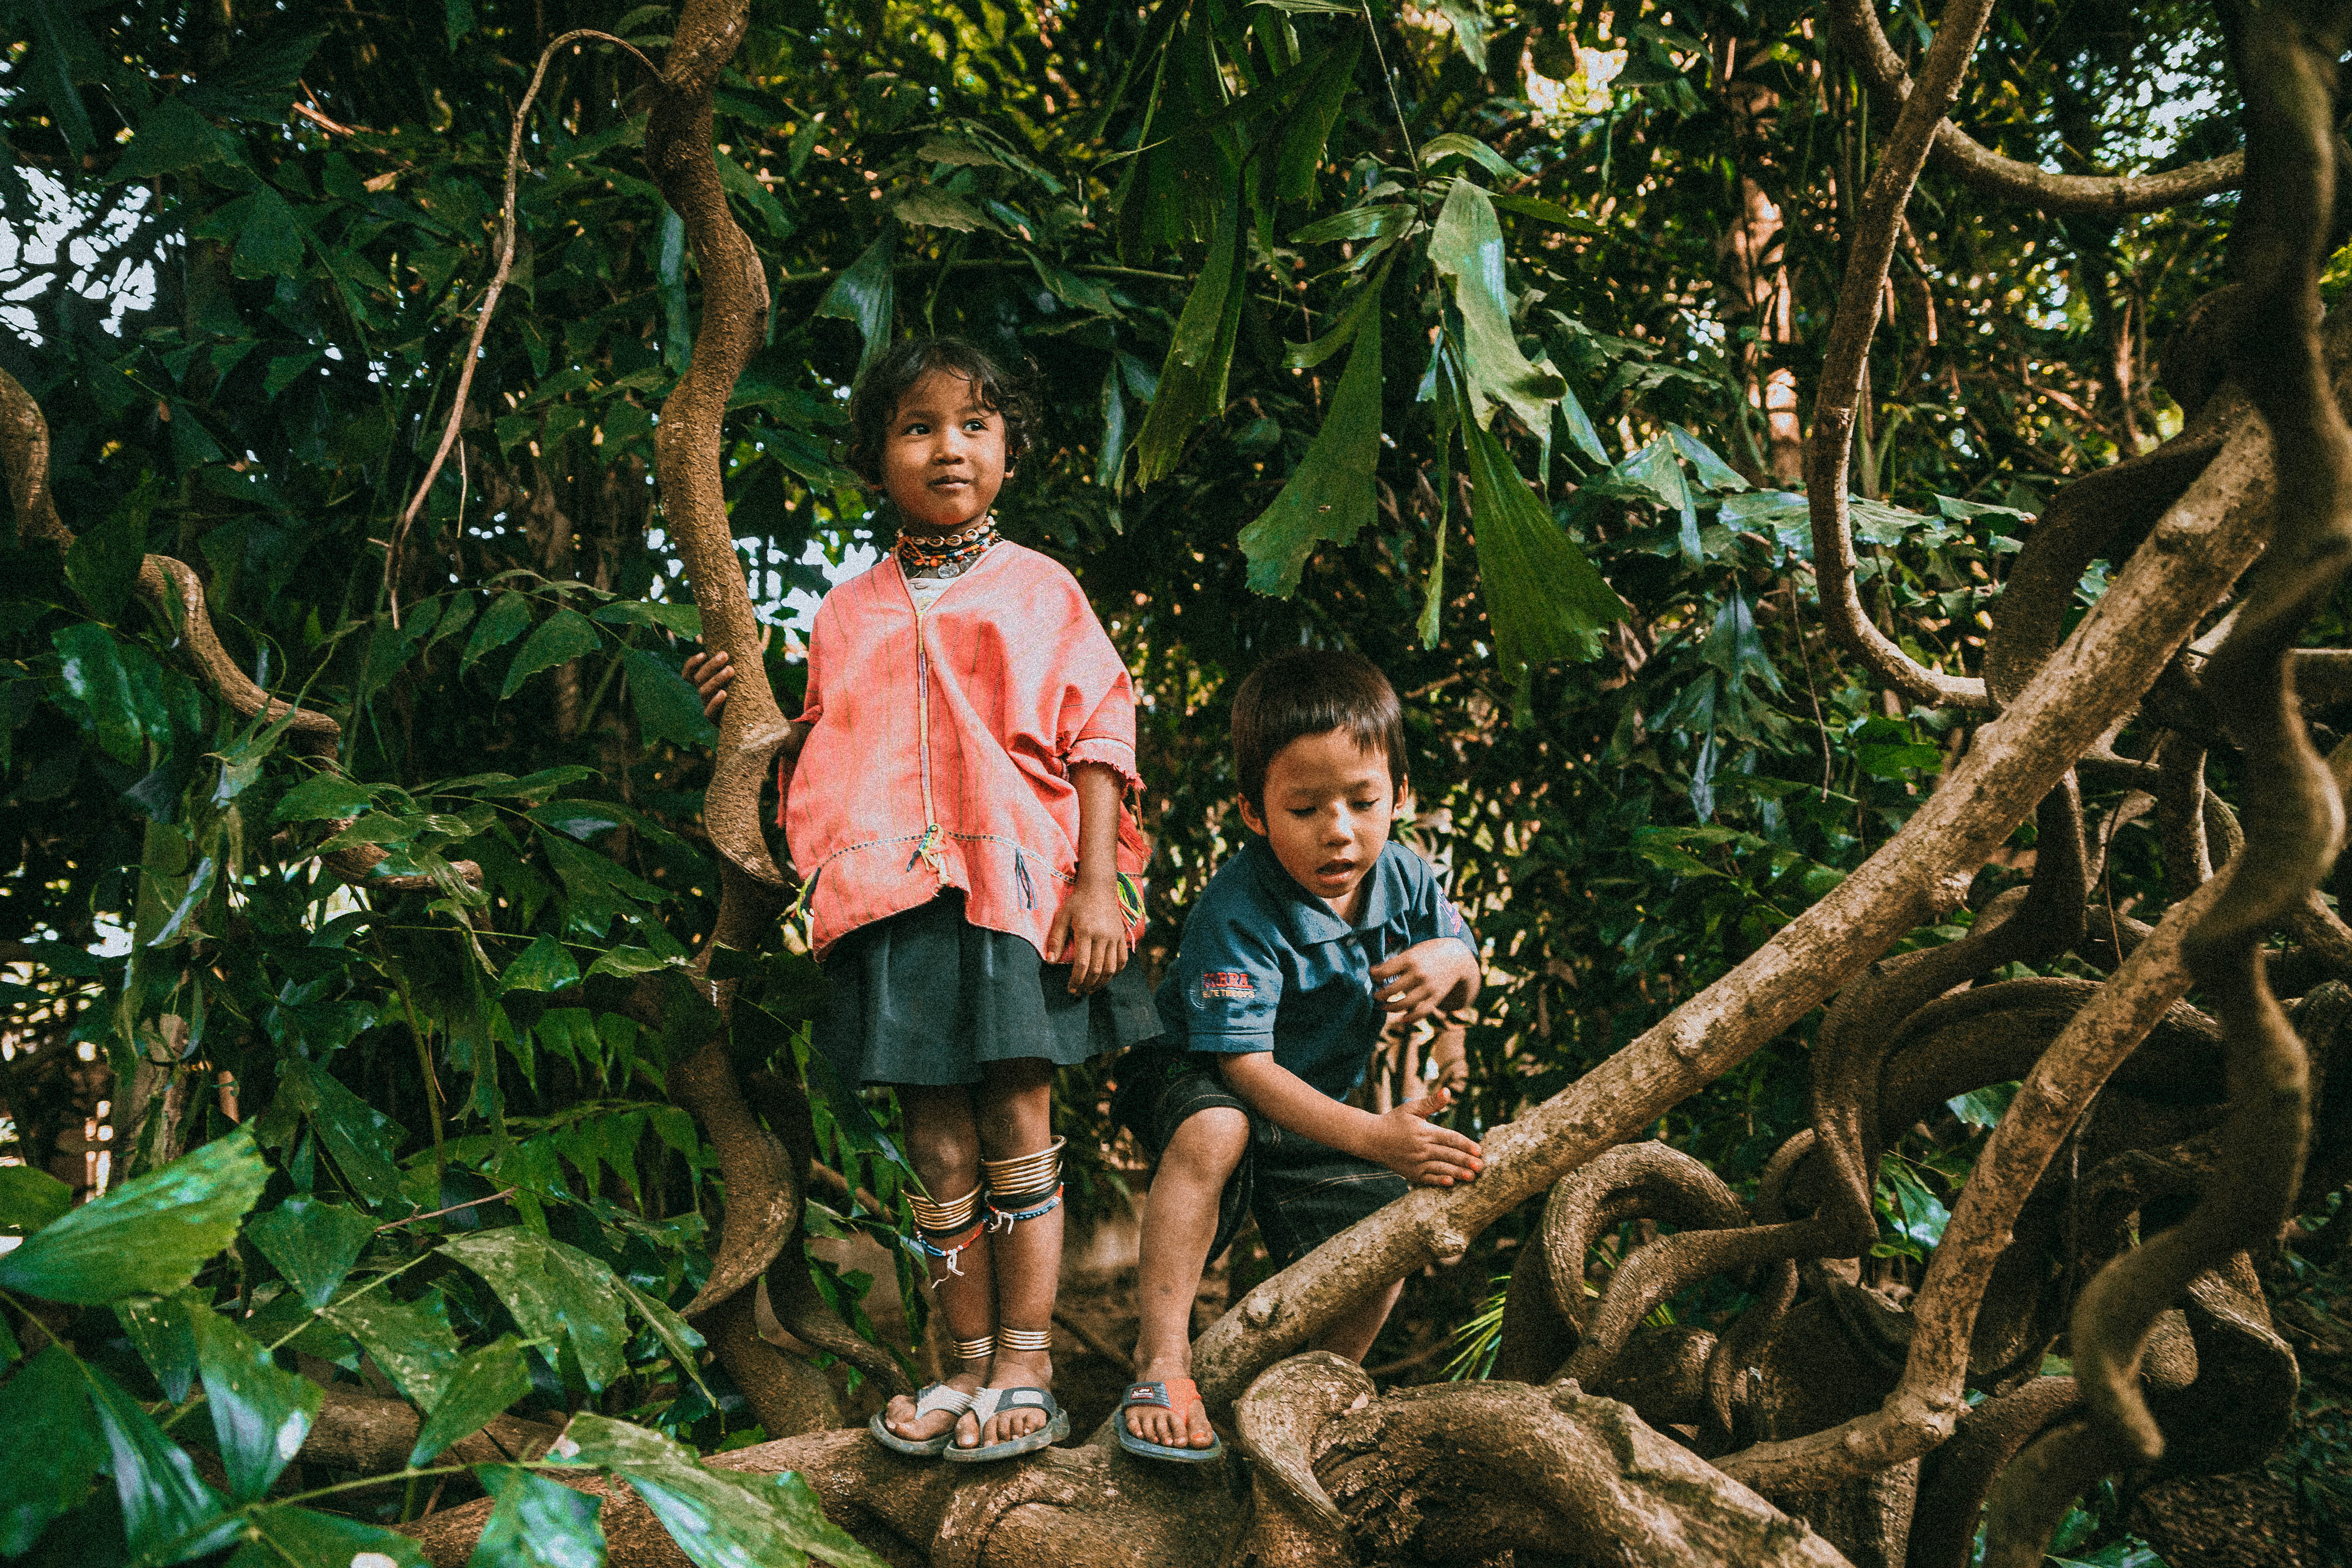 LOCAL KIDS POSING IN THE JUNGLE IN THAILAND